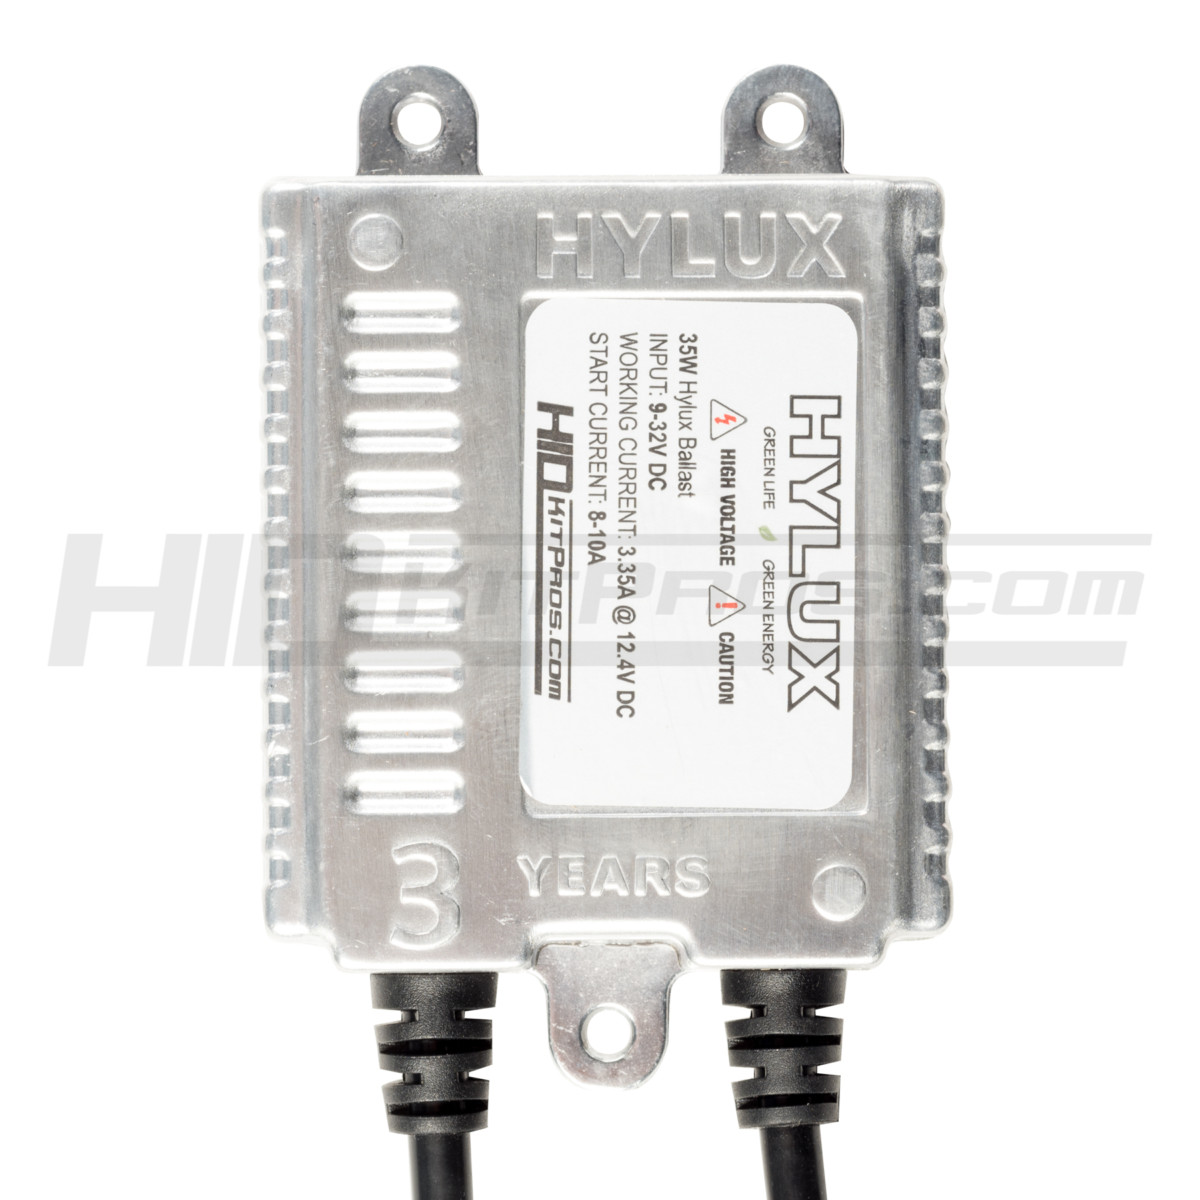 Hylux Hid High Efficiency Ballast 35 Watt A2088 Kit Pros Circuit Topology The Circuitry For An